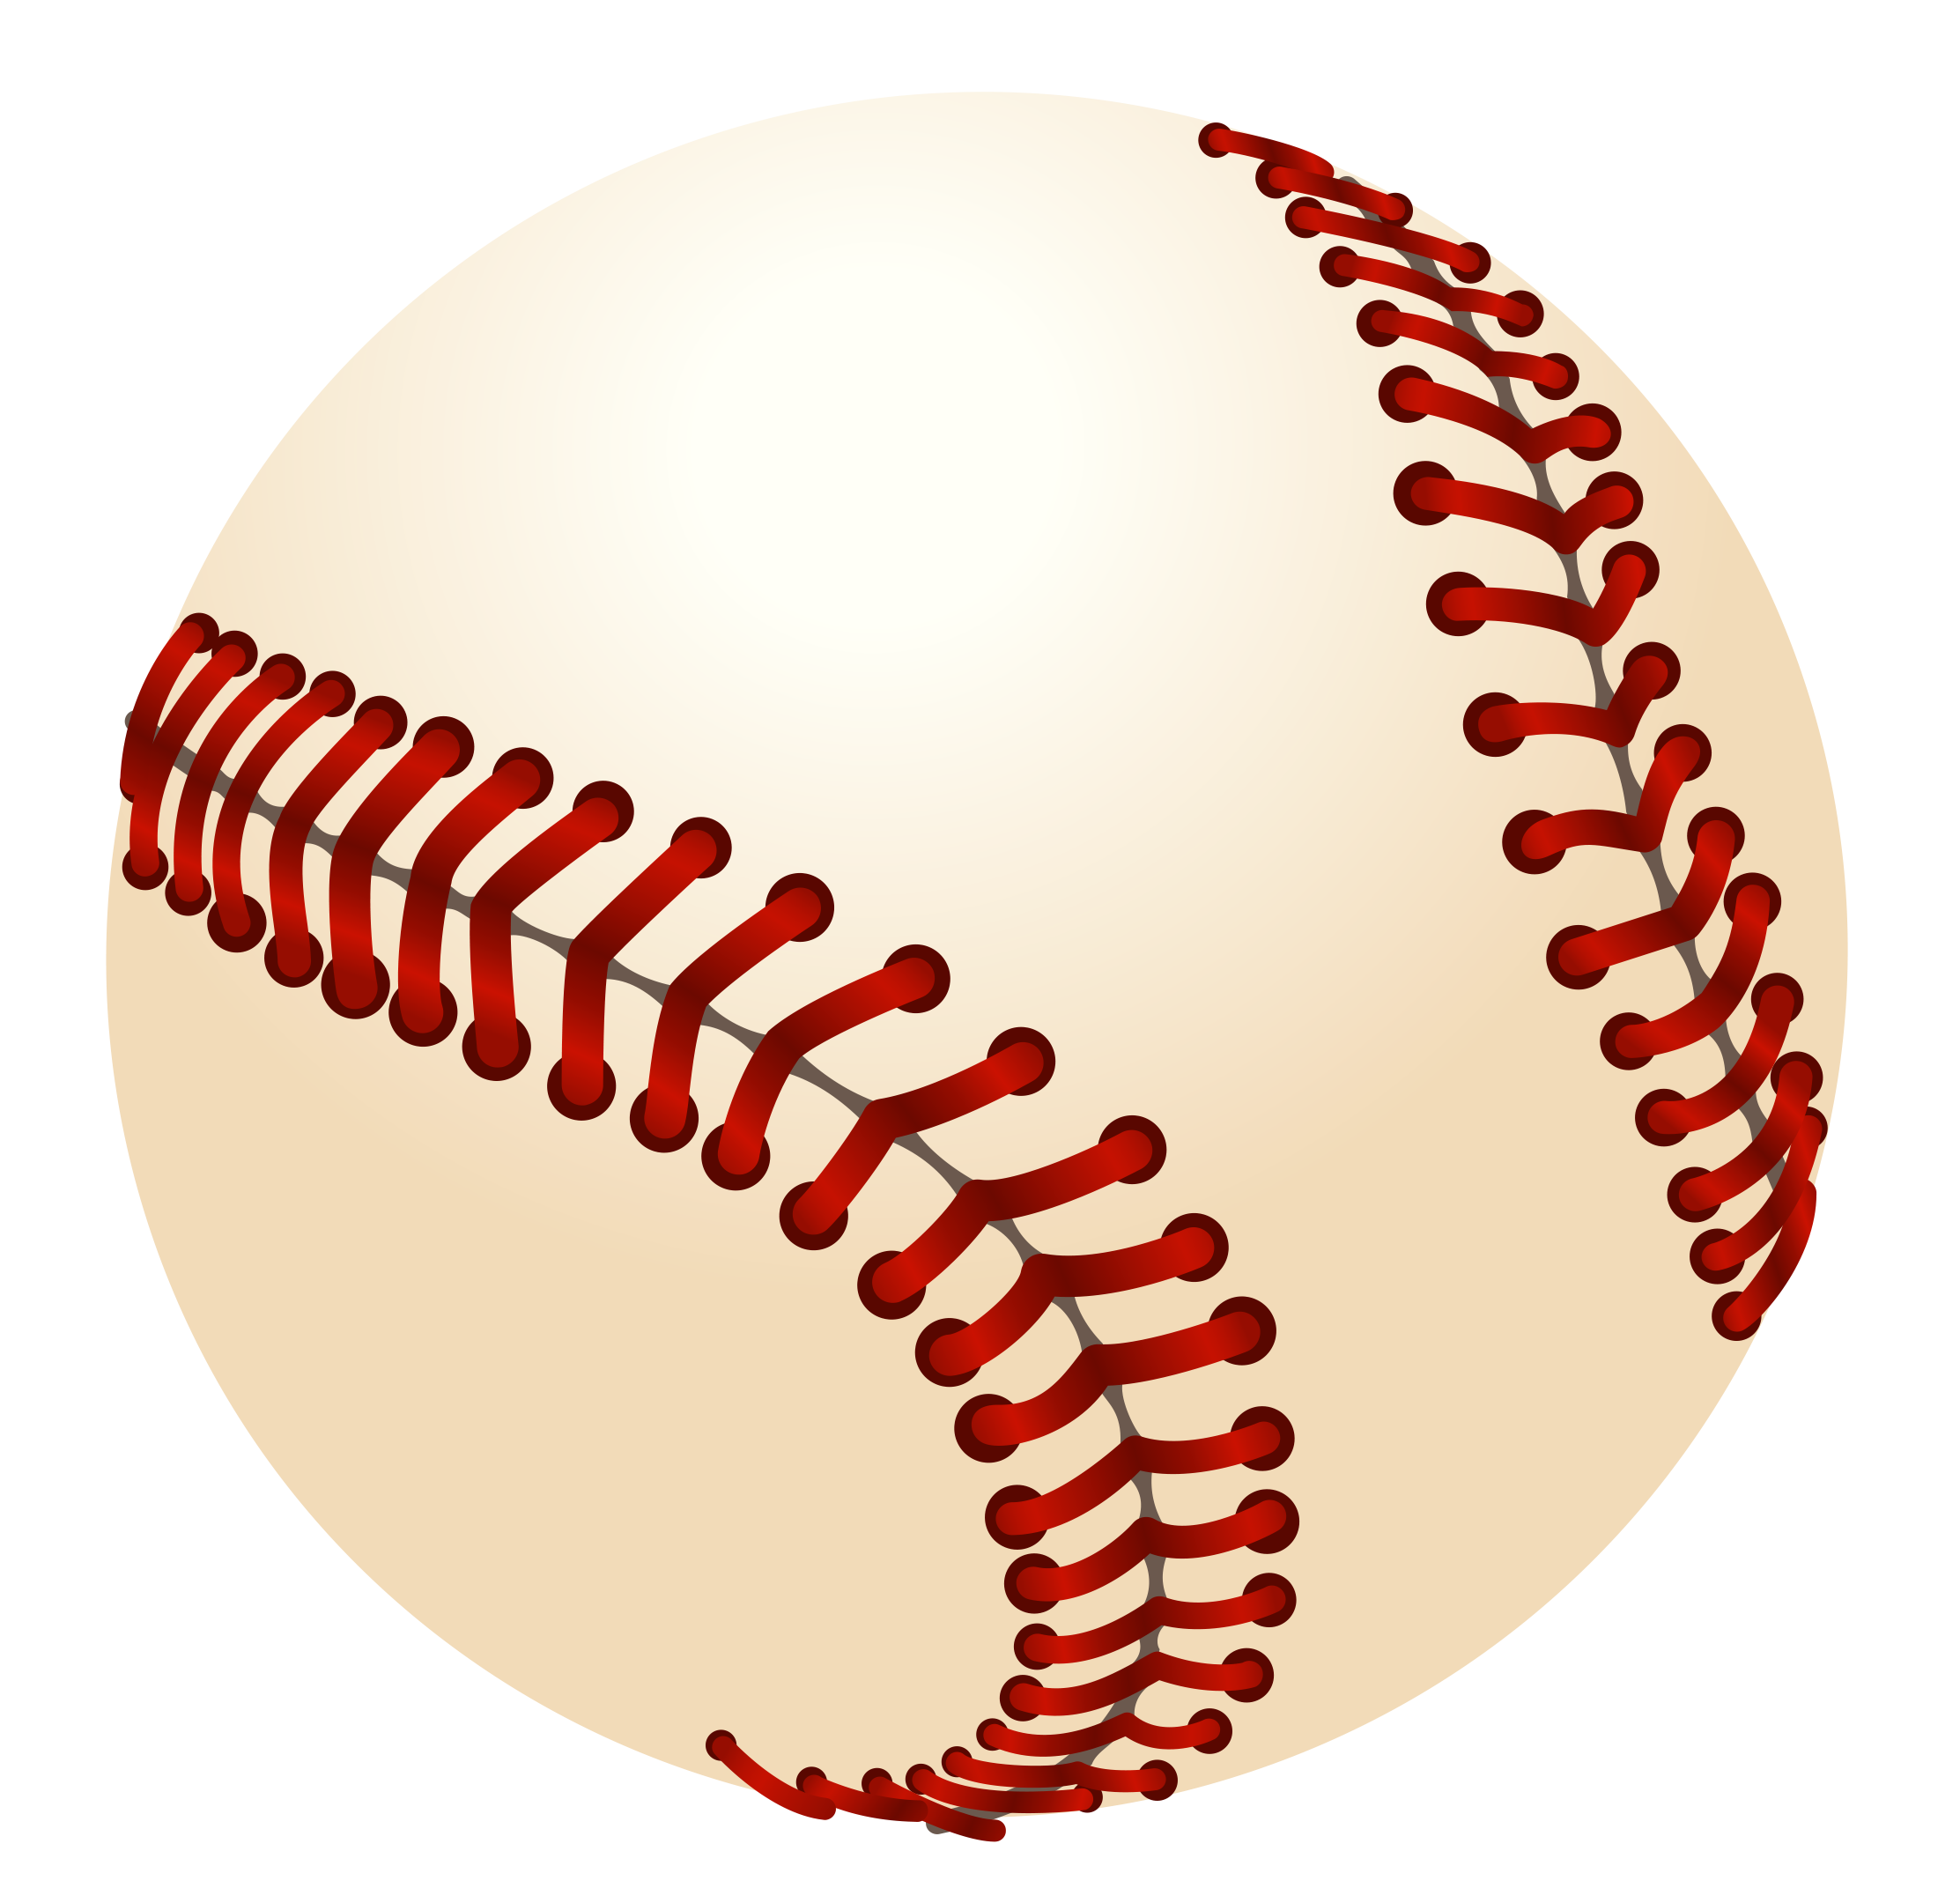 Ball png picture gallery. Clipart hearts baseball